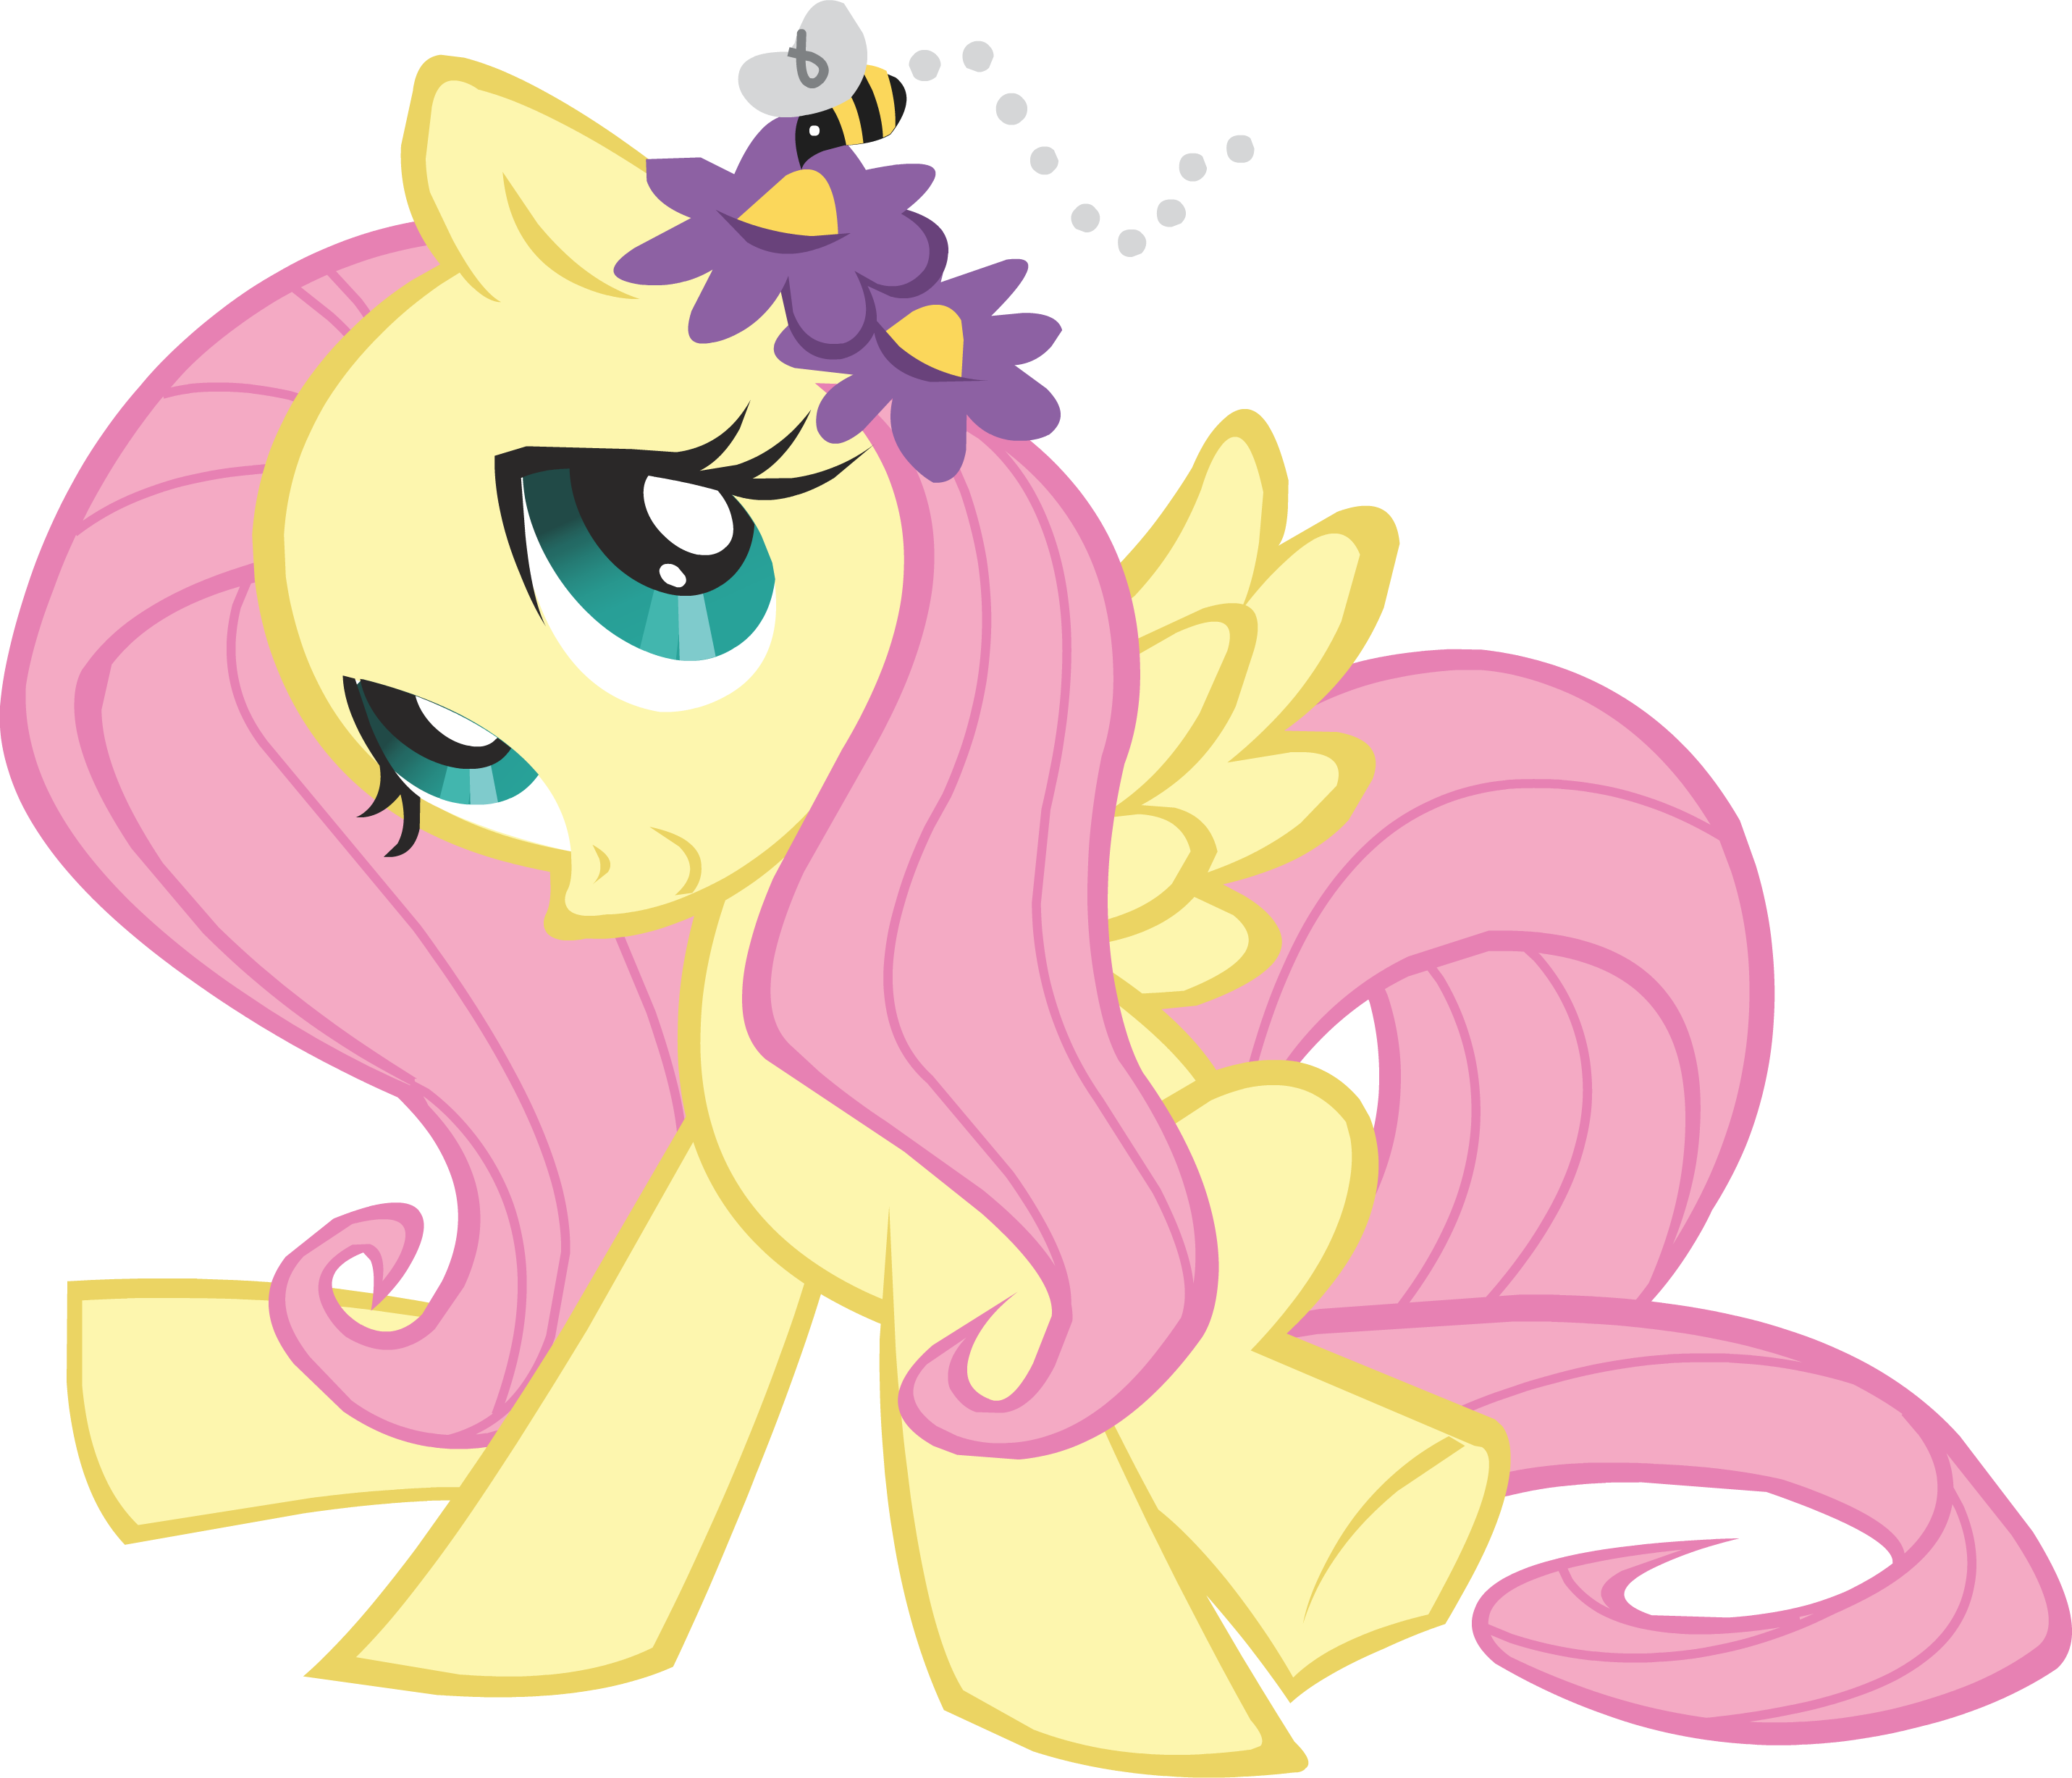 ... Castle Fluttershy 3.png - My Little Pony Friendship is Magic Wiki